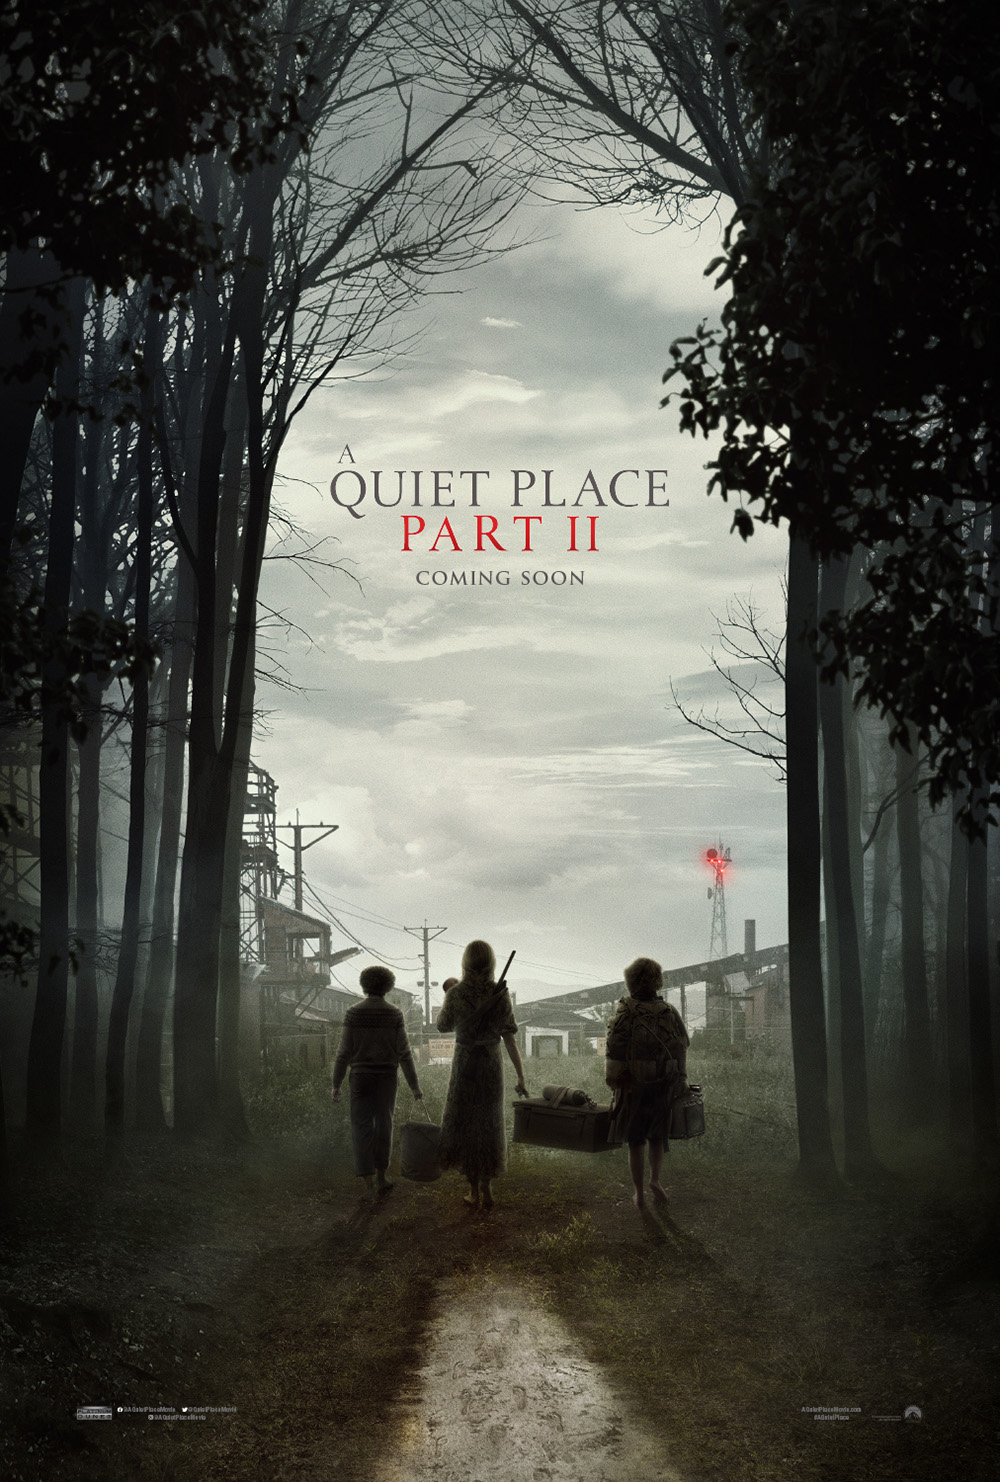 A QUIET PLACE PART II - POSTER